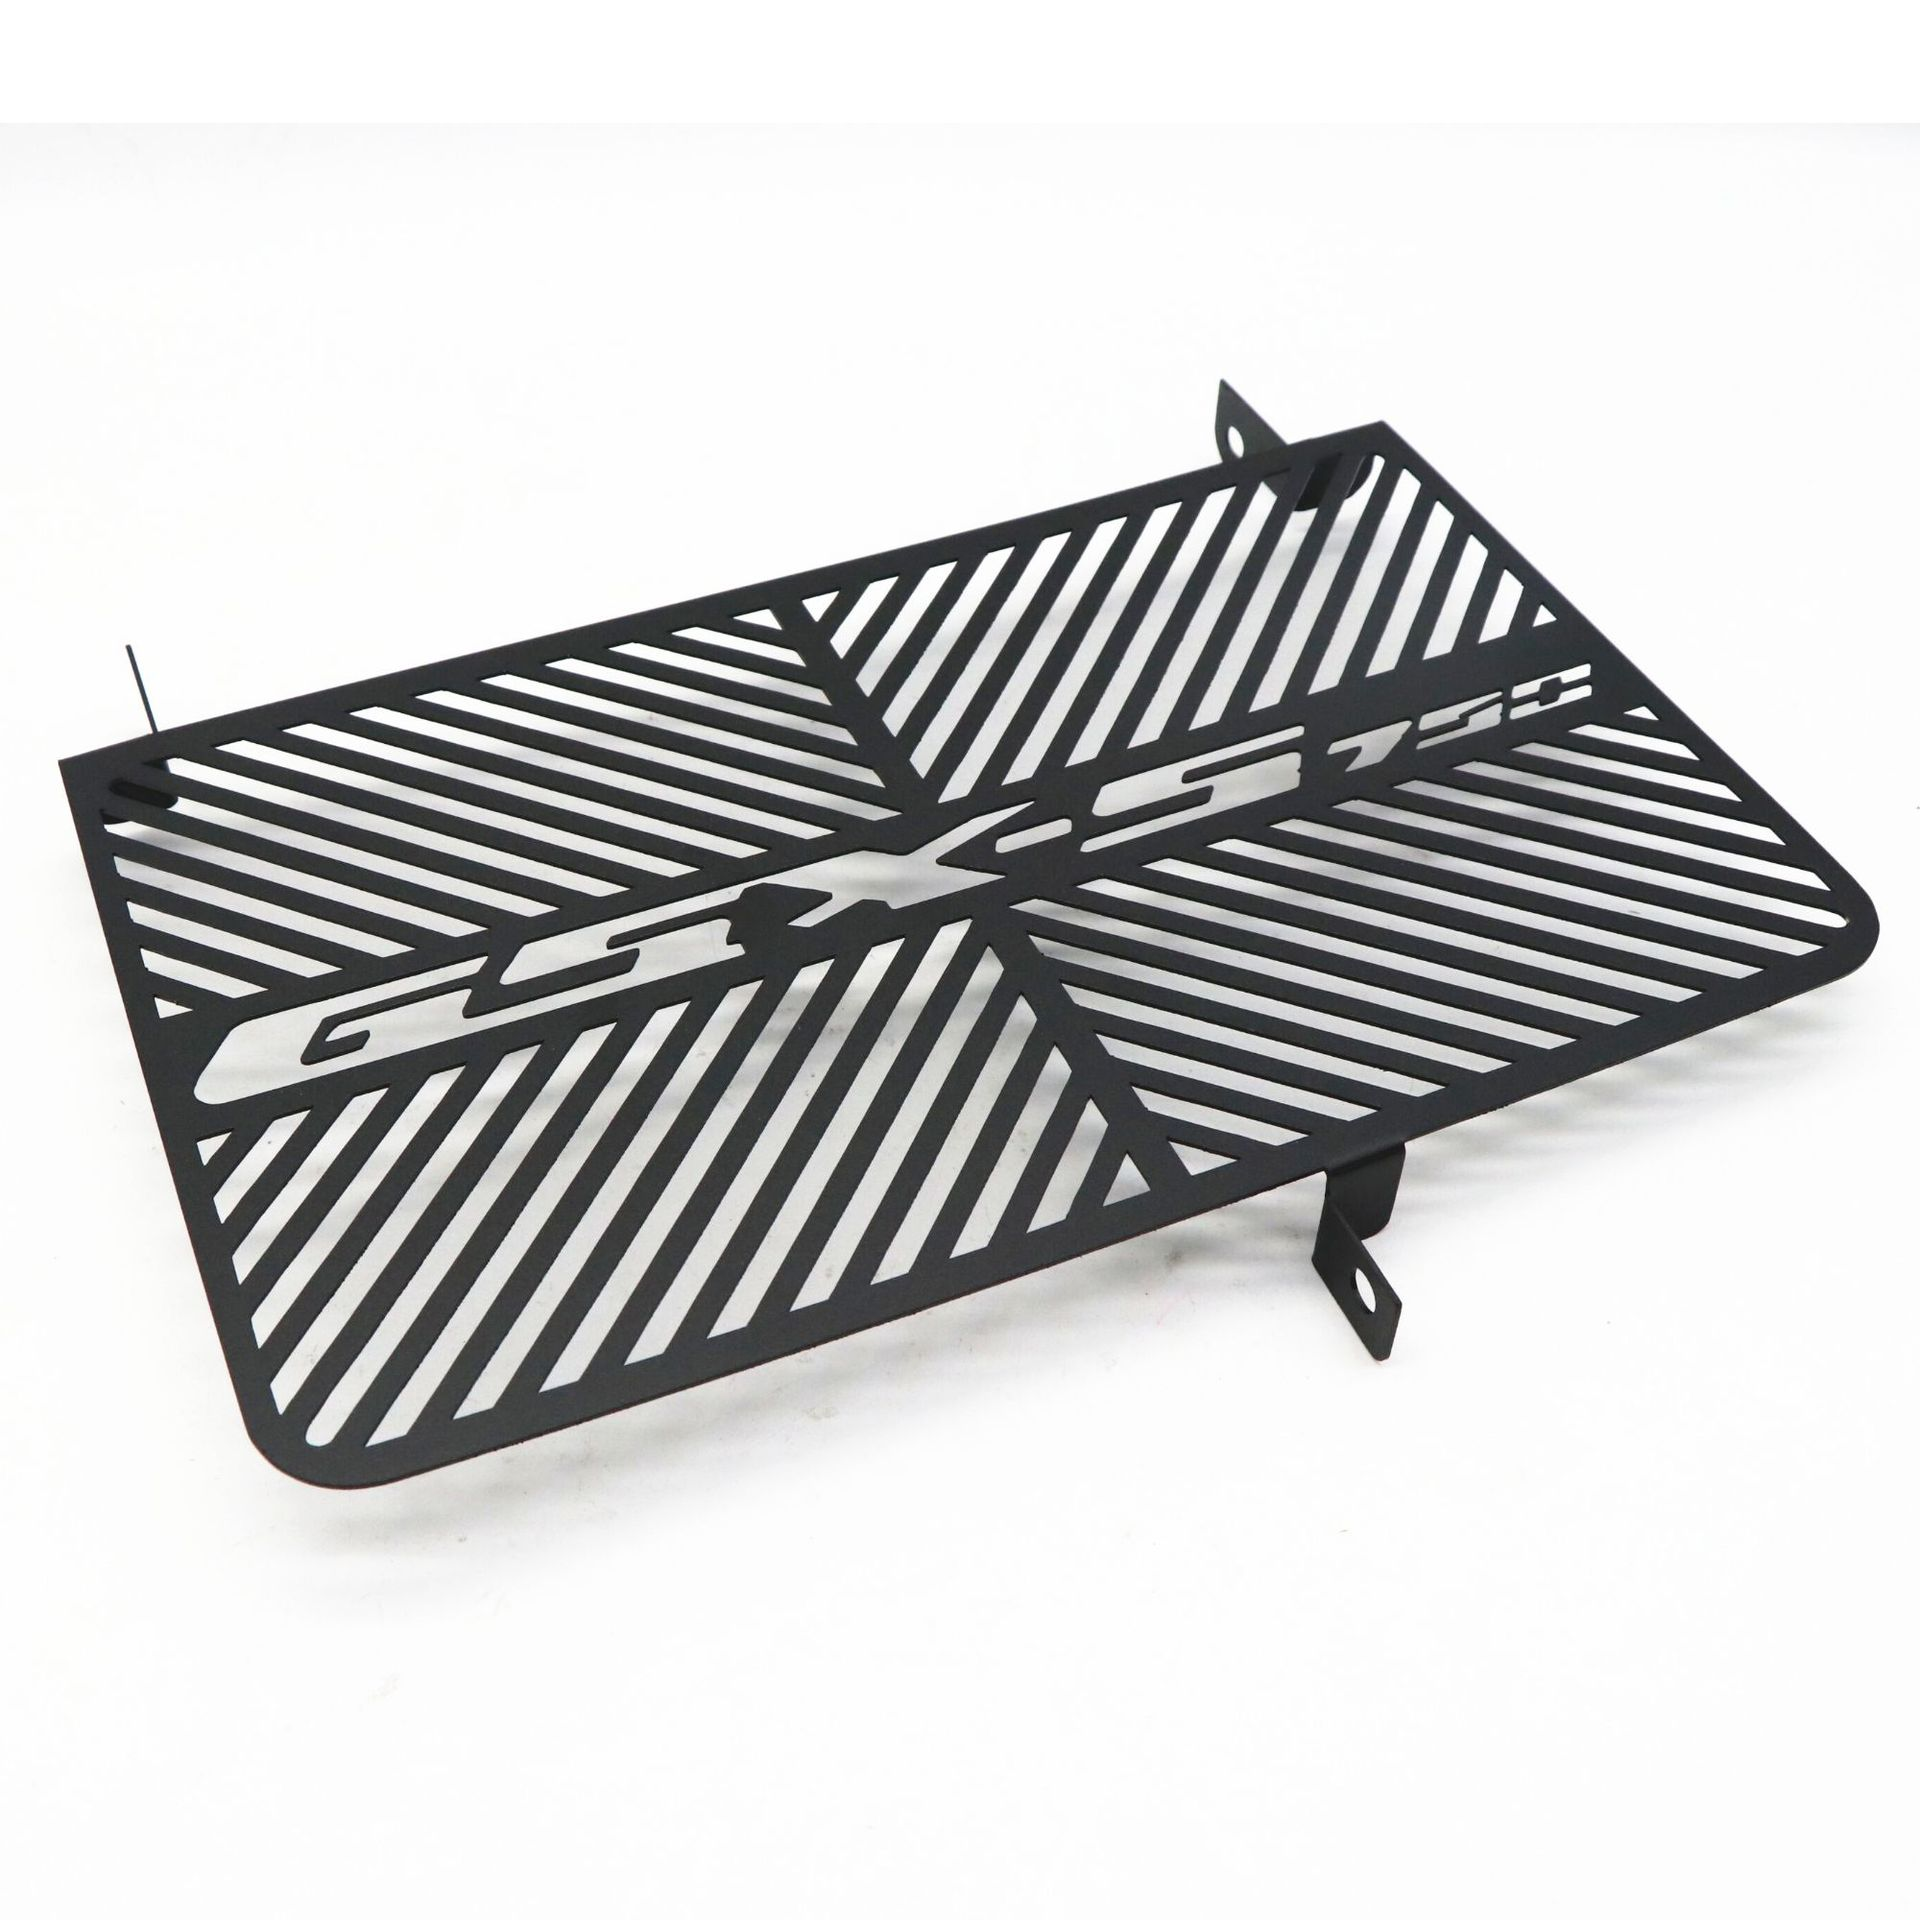 For SUZUKI GSX-S750 GSXS750 GSXS 750 2015-2018 Motorcycle Radiator Grille Guard Cover Protector Fuel Tank Protection Net black